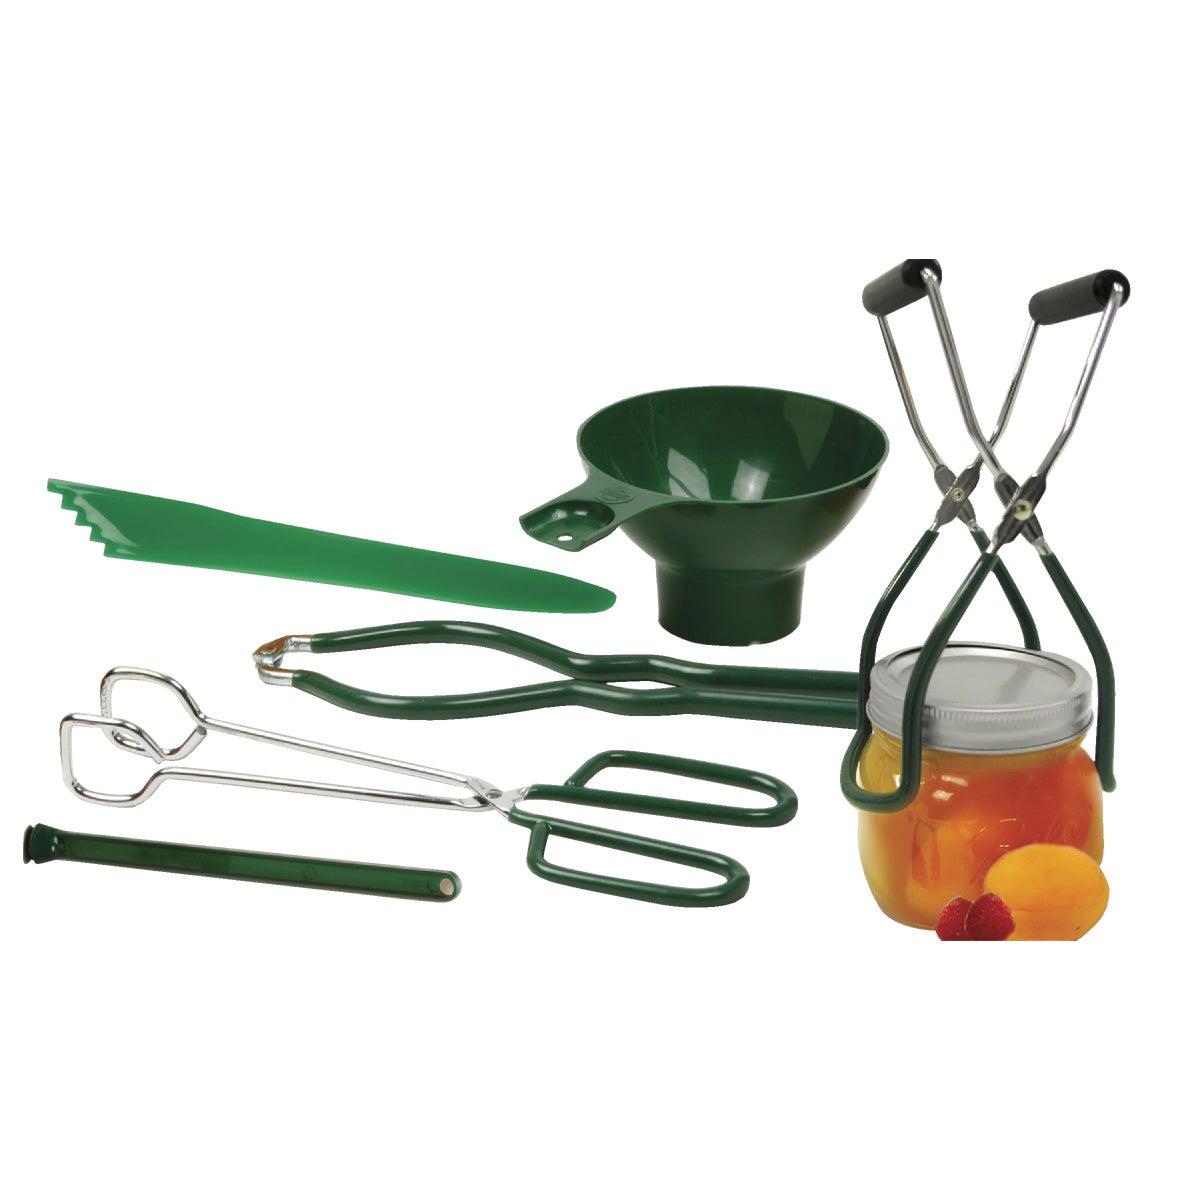 5PC CANNING SET